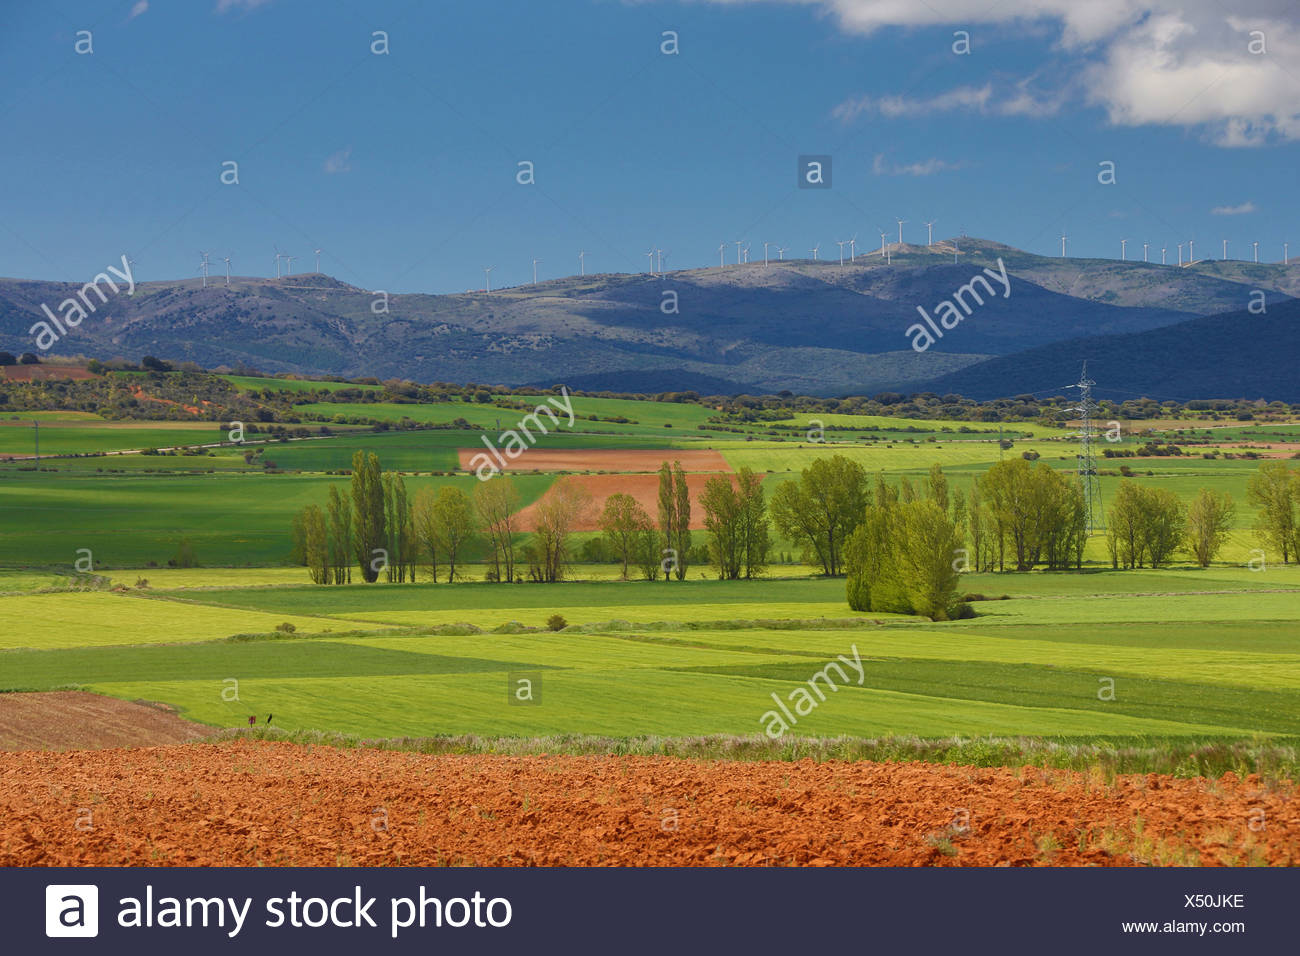 Aragon, colourful, countryside, earth, landscape, nature, purple, red, soria, Spain, Europe, spring, agriculture, field, - Stock Image